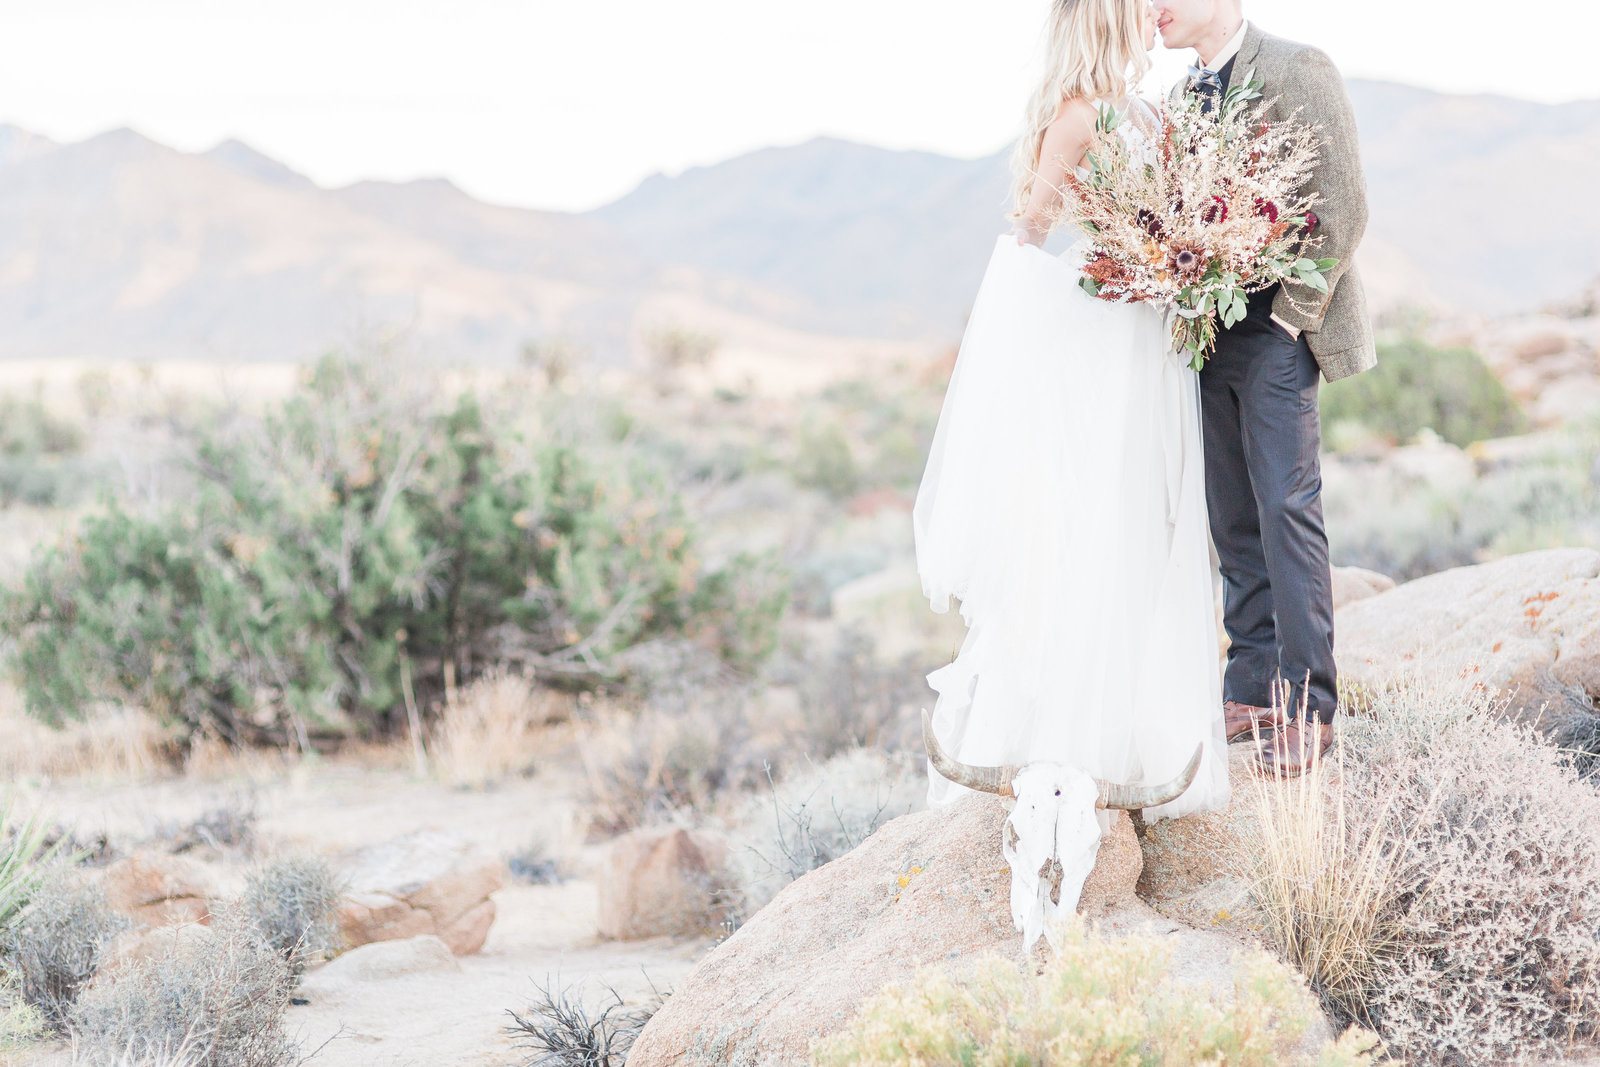 Bride and Groom destination elopement portrait in Joshua Tree, CA by C. elyse photos